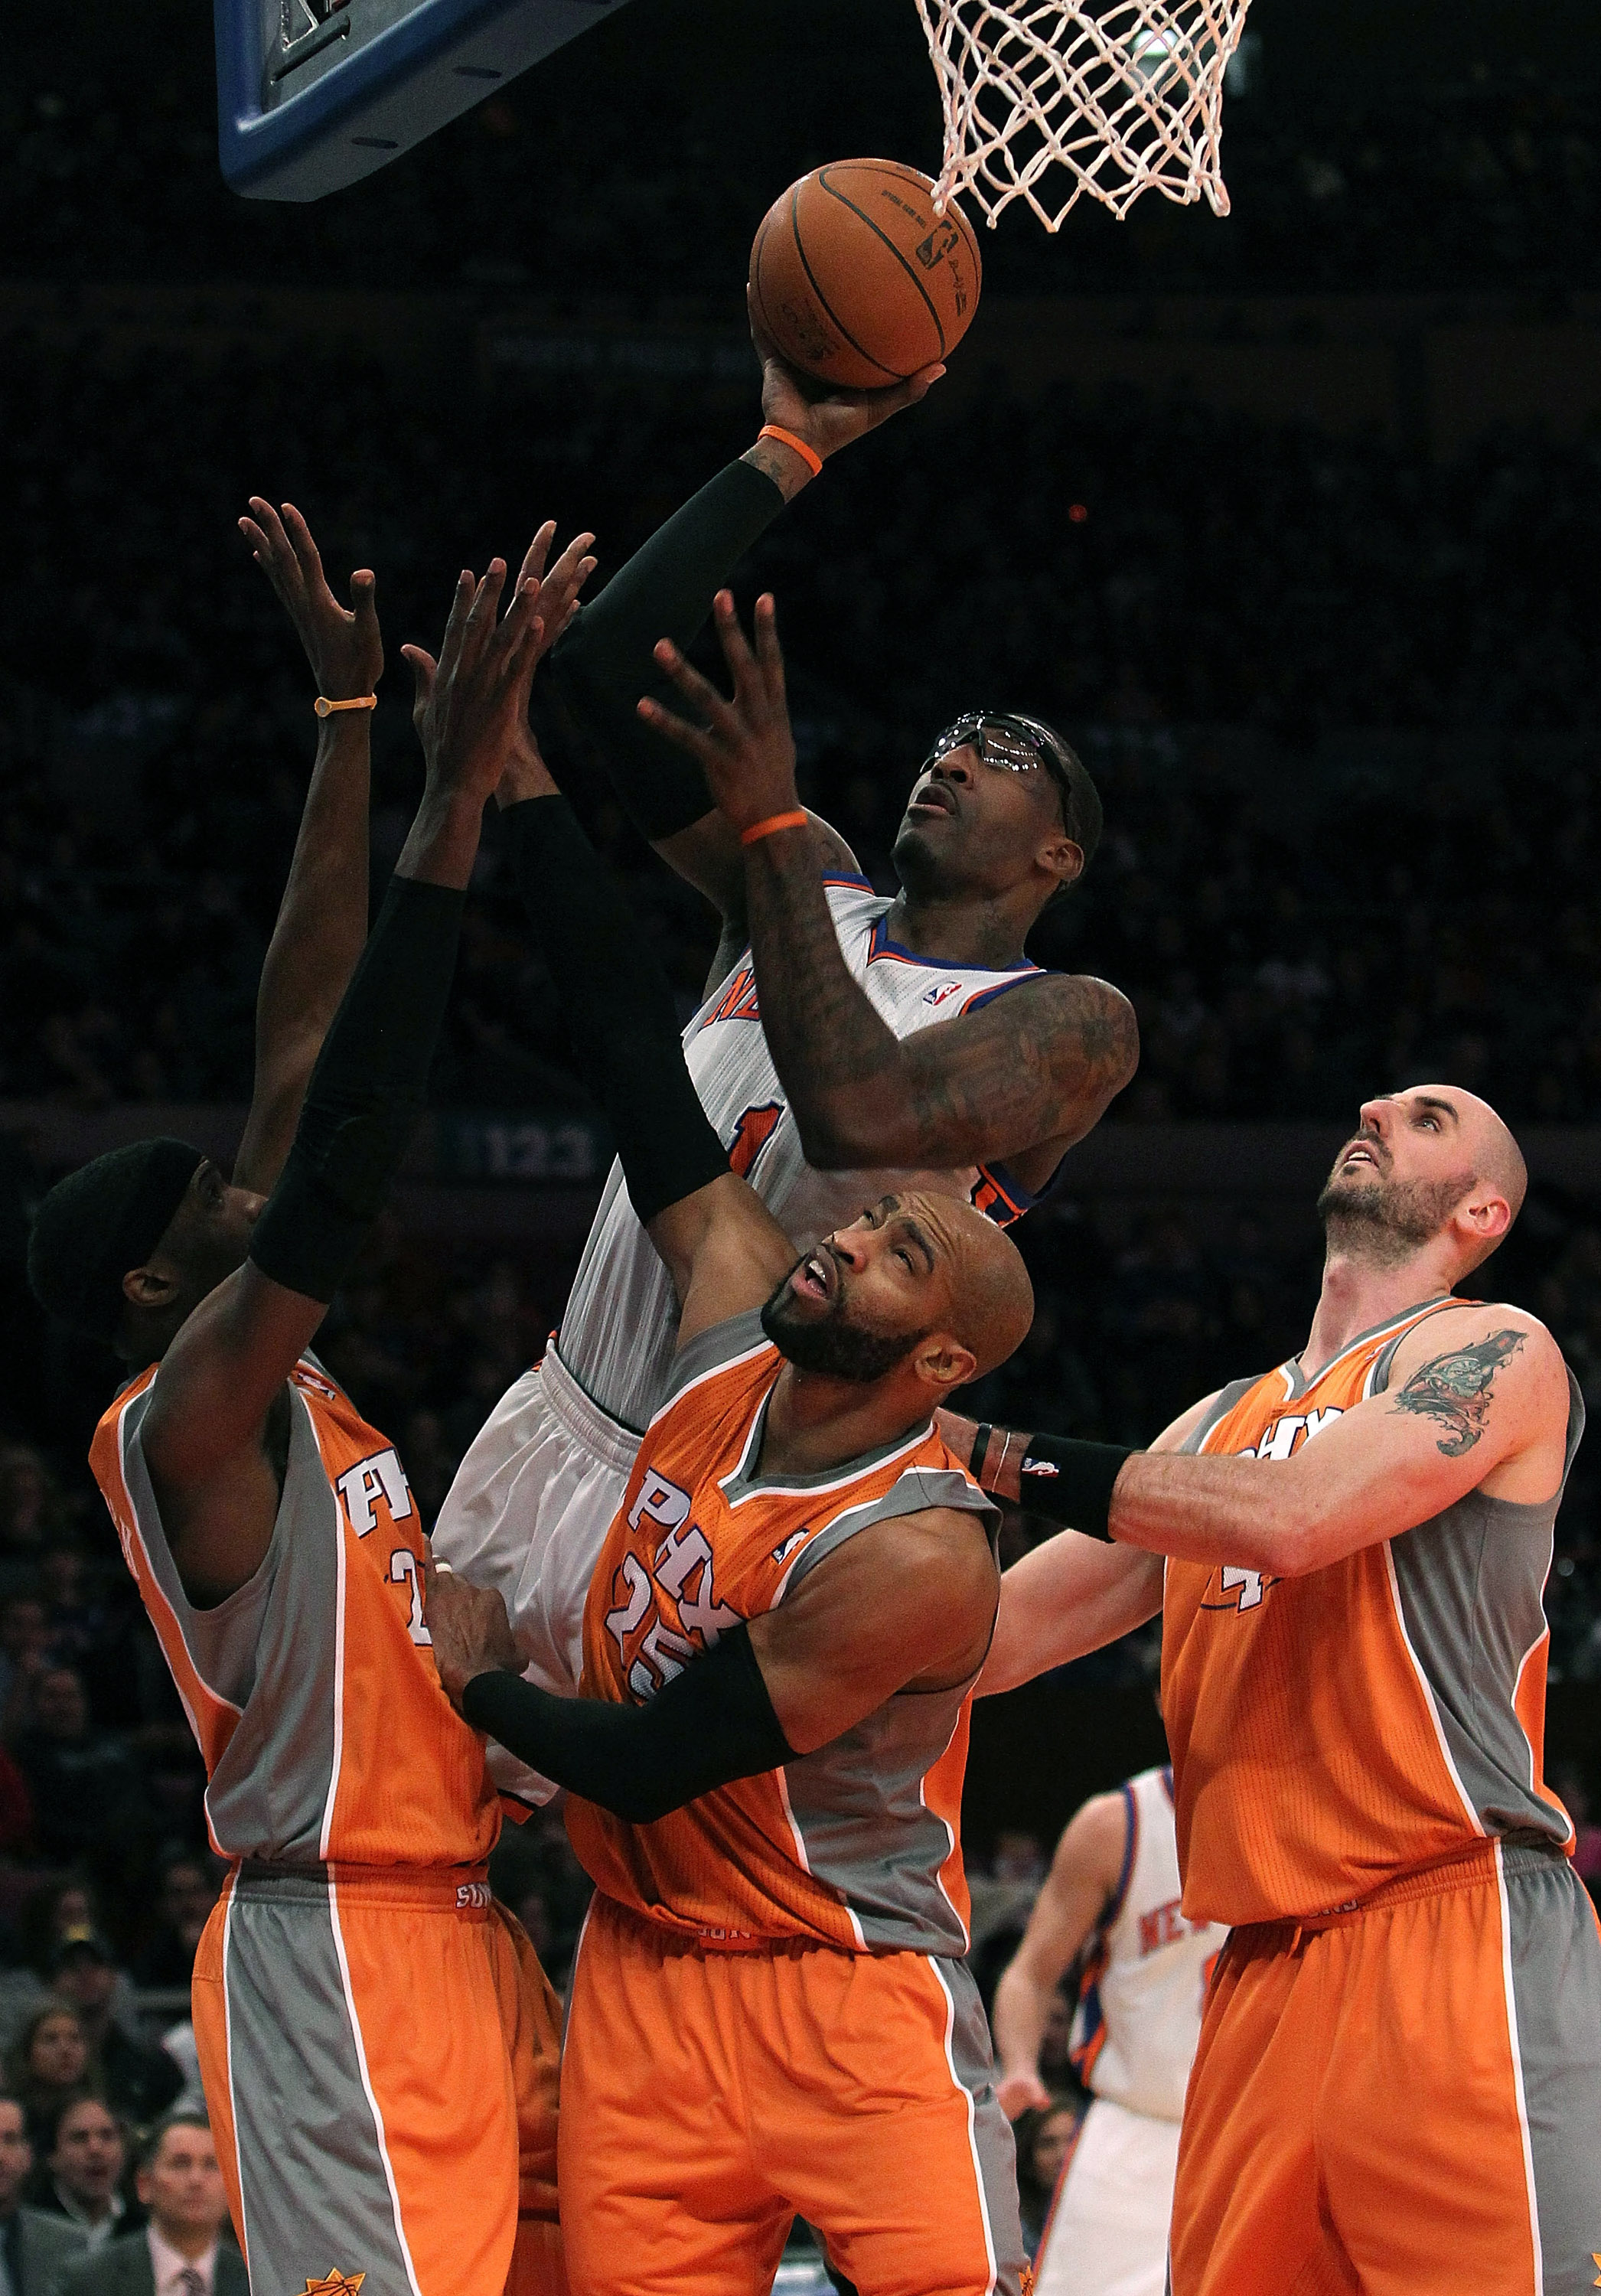 NEW YORK, NY - JANUARY 17:  Amar'e Stoudemire #1 of the New York Knicks shoots the ball against Hakim Warrick #21, Vince Carter #15 and Marcin Gortat #4 of the Phoenix Suns at Madison Square Garden on January 17, 2011 in New York City. NOTE TO USER: User